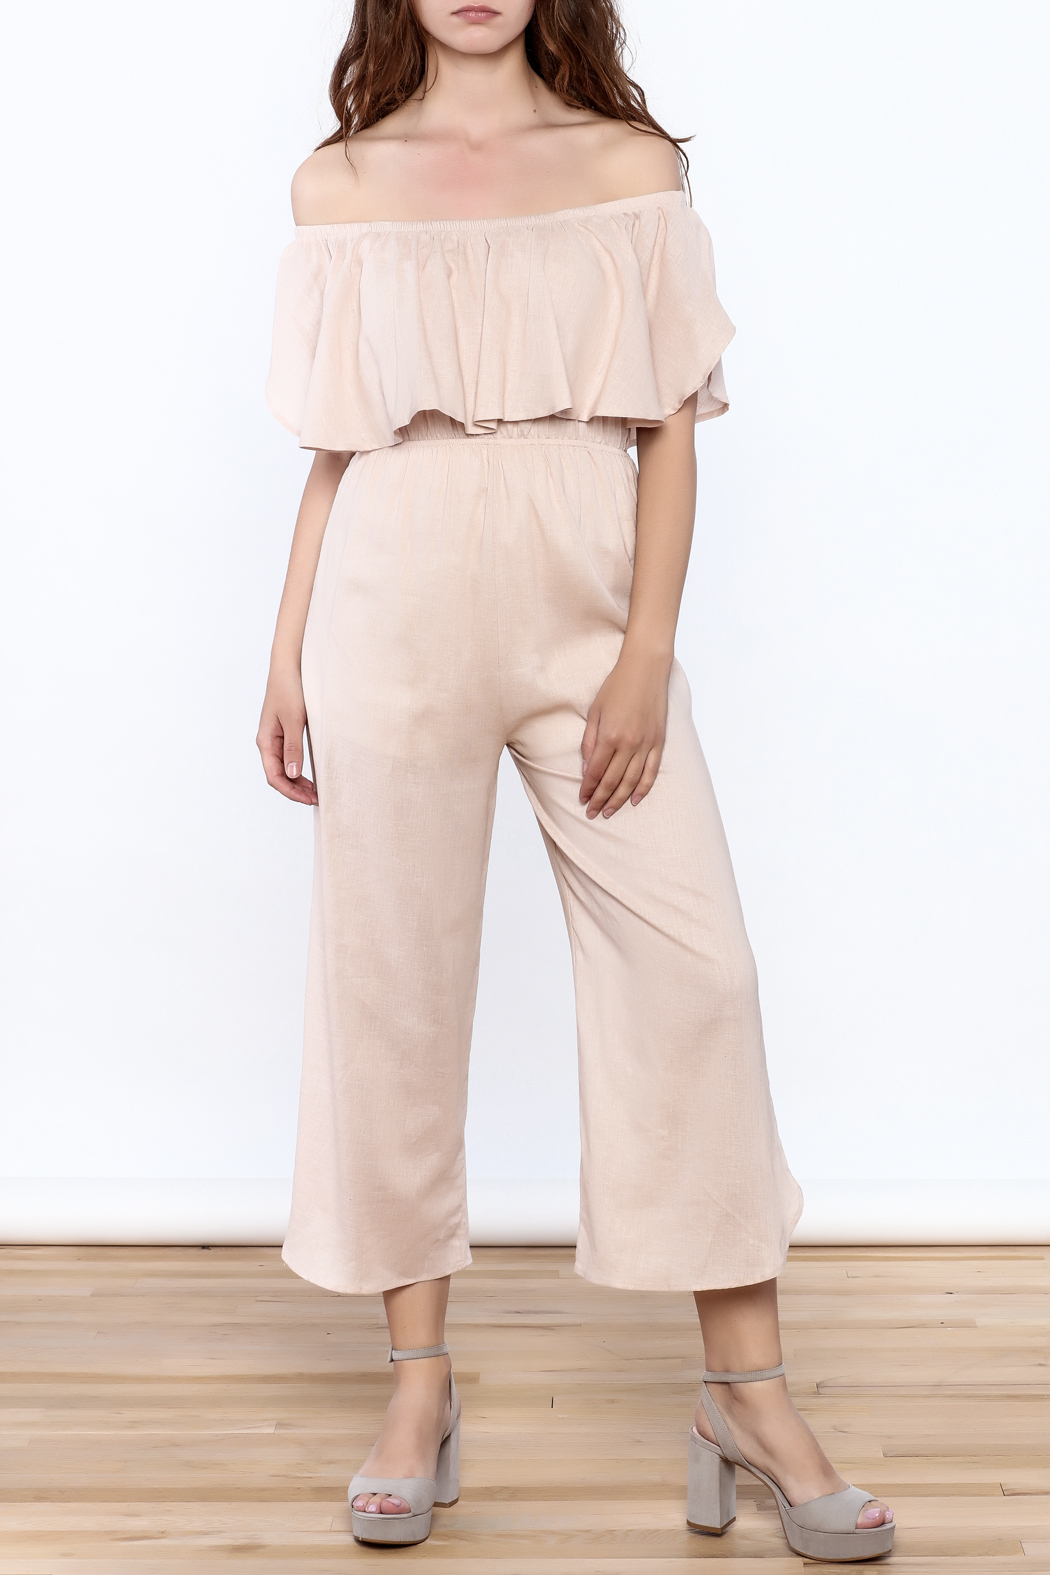 Audrey 3+1 Blush Pink Jumpsuit from Louisiana by Bella Bella ...